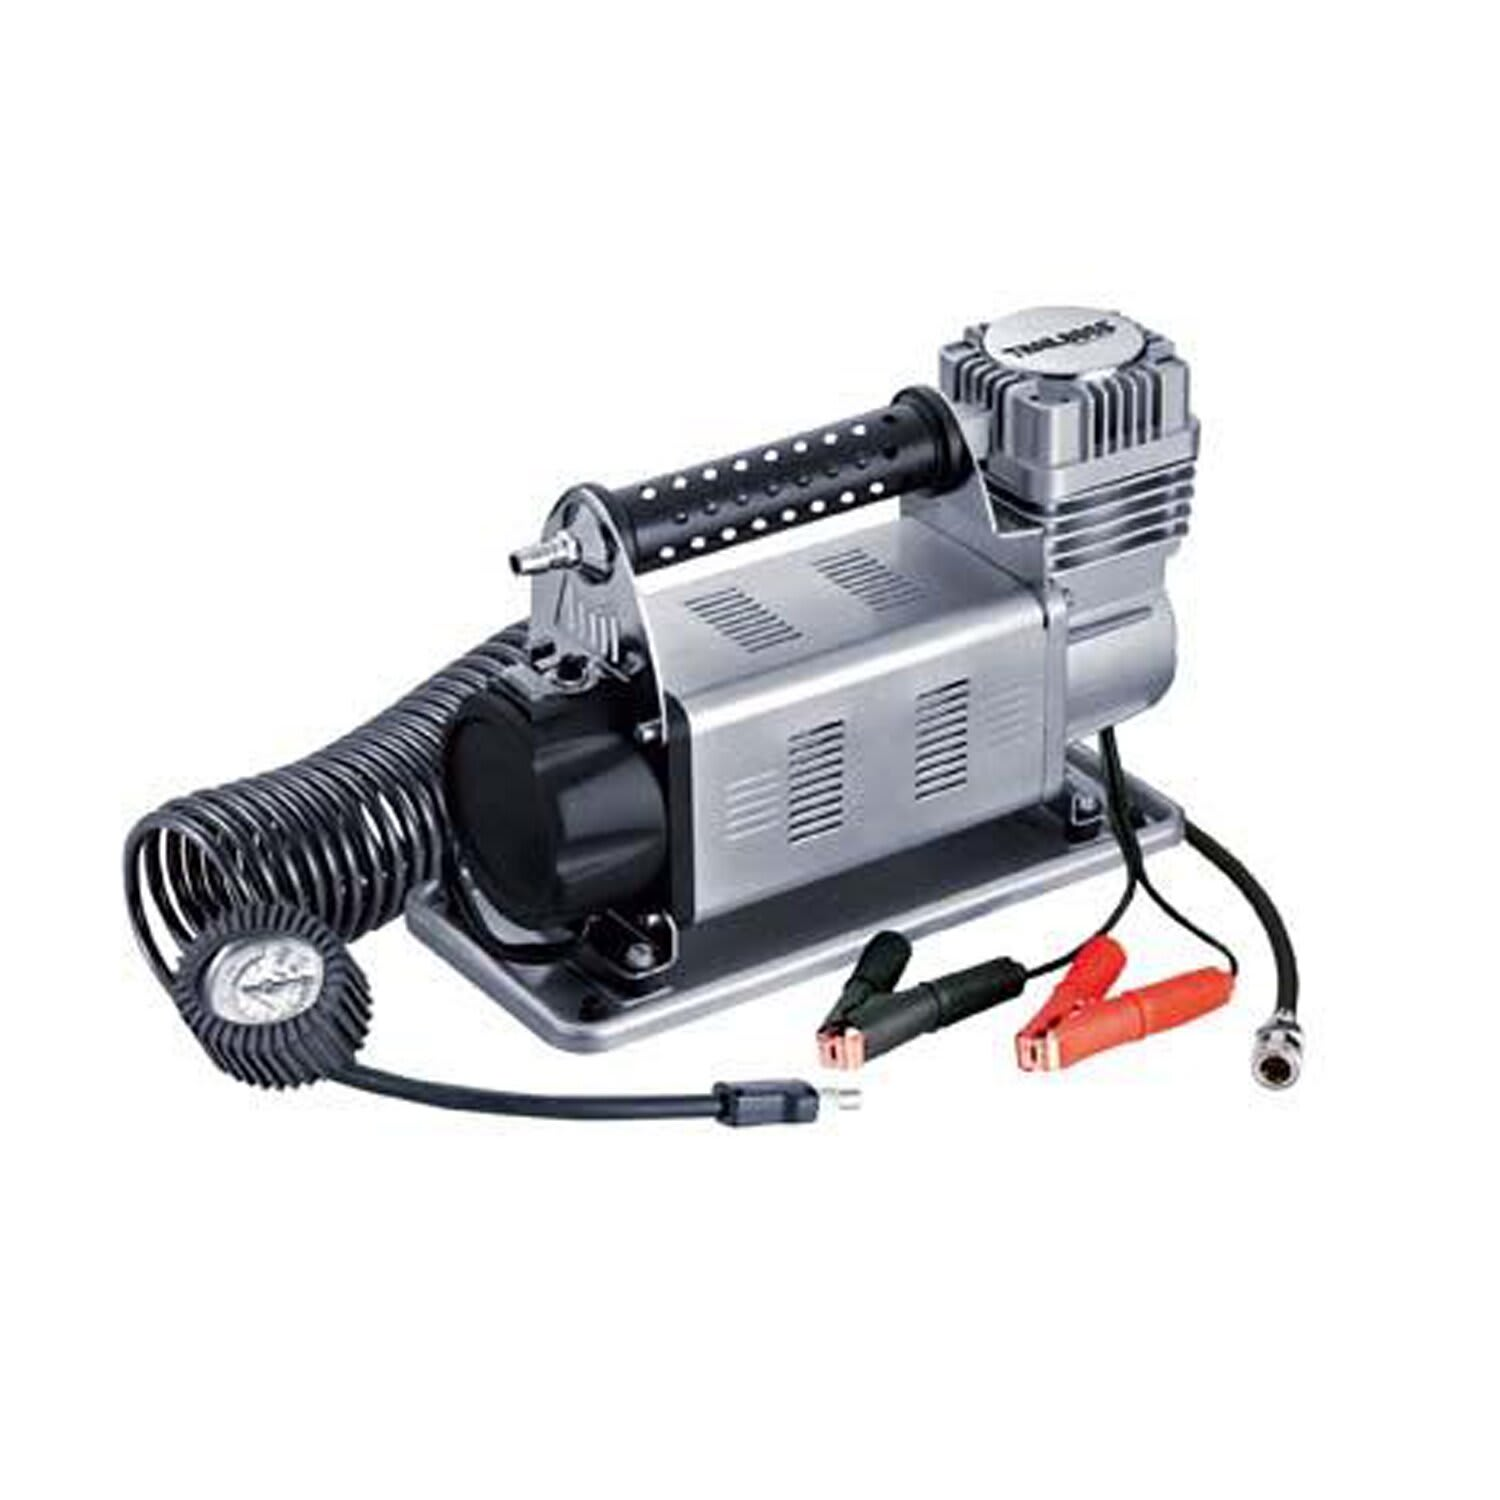 TrailBoss 160L Compressor